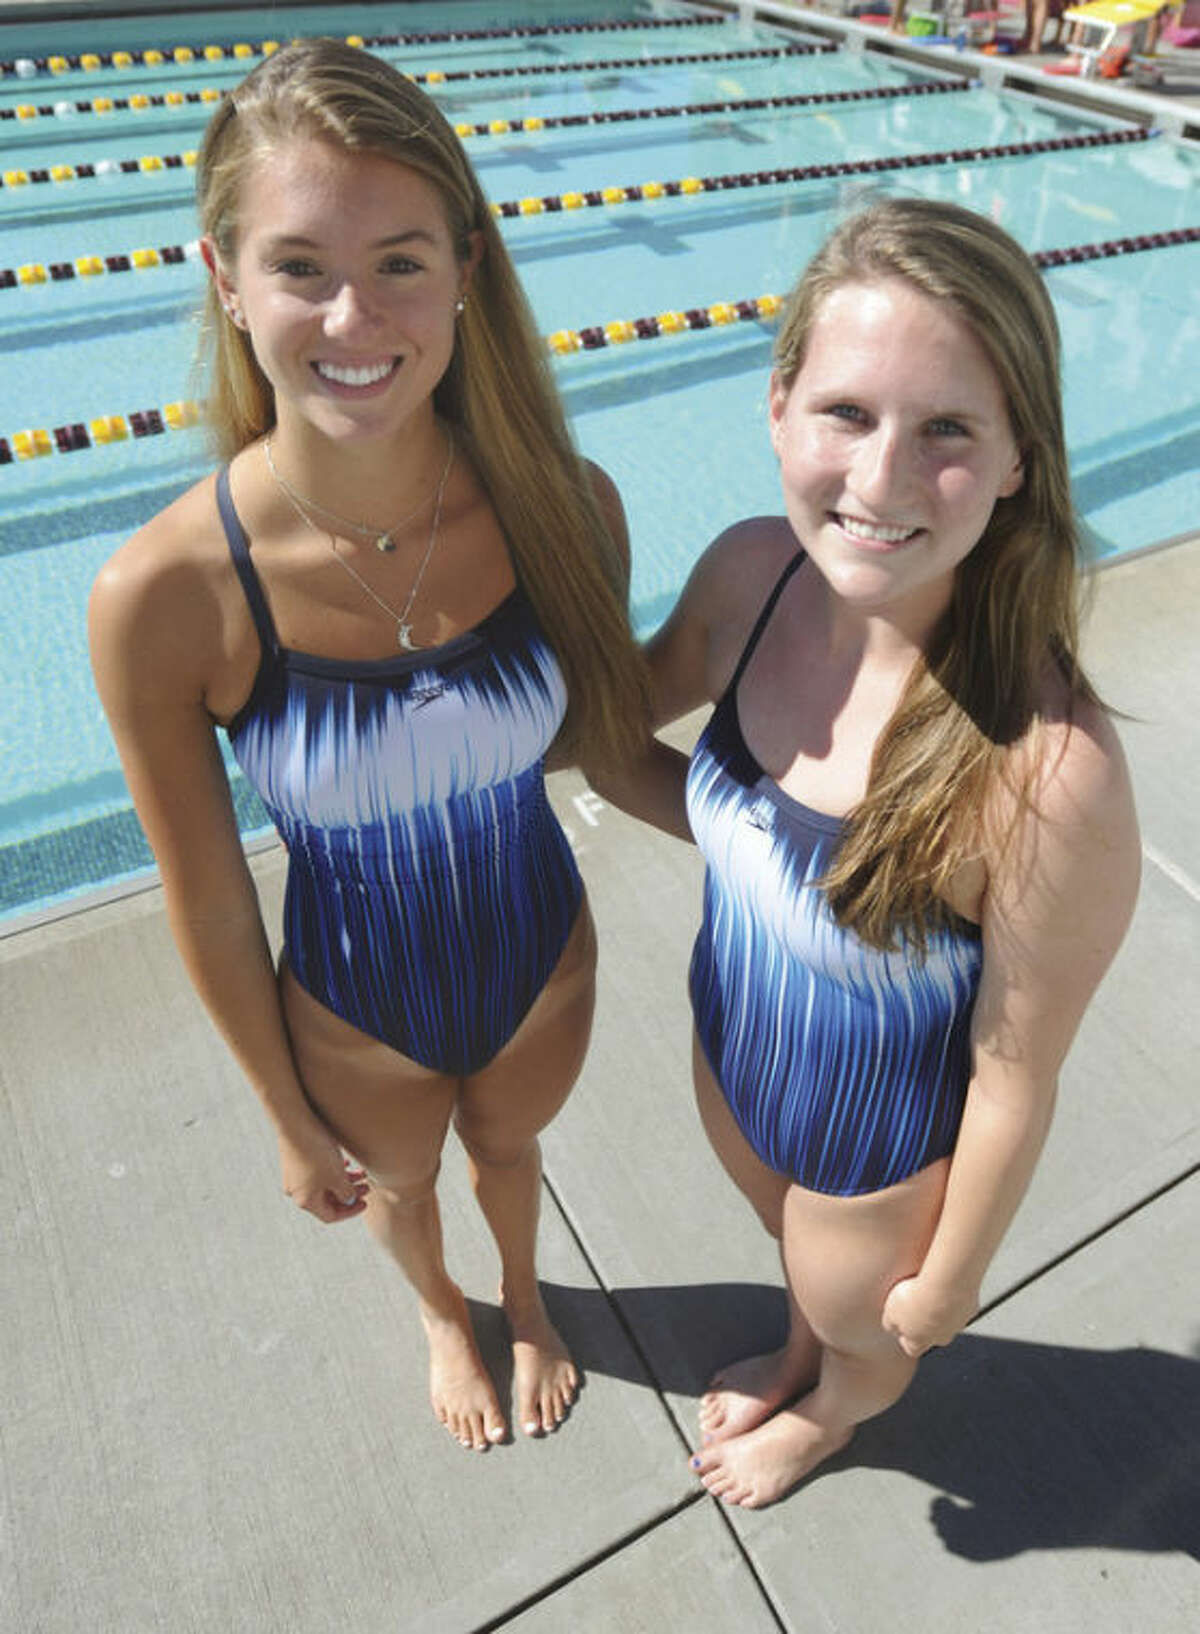 Hour photo/John Nash For the past three seasons, Wilton seniors Kristen Moss, left, and Steph Moriarty have been among the Warriors best swimmers. They will be the leaders this season for a Warriors' squad aiming to live up to the program's high standards.